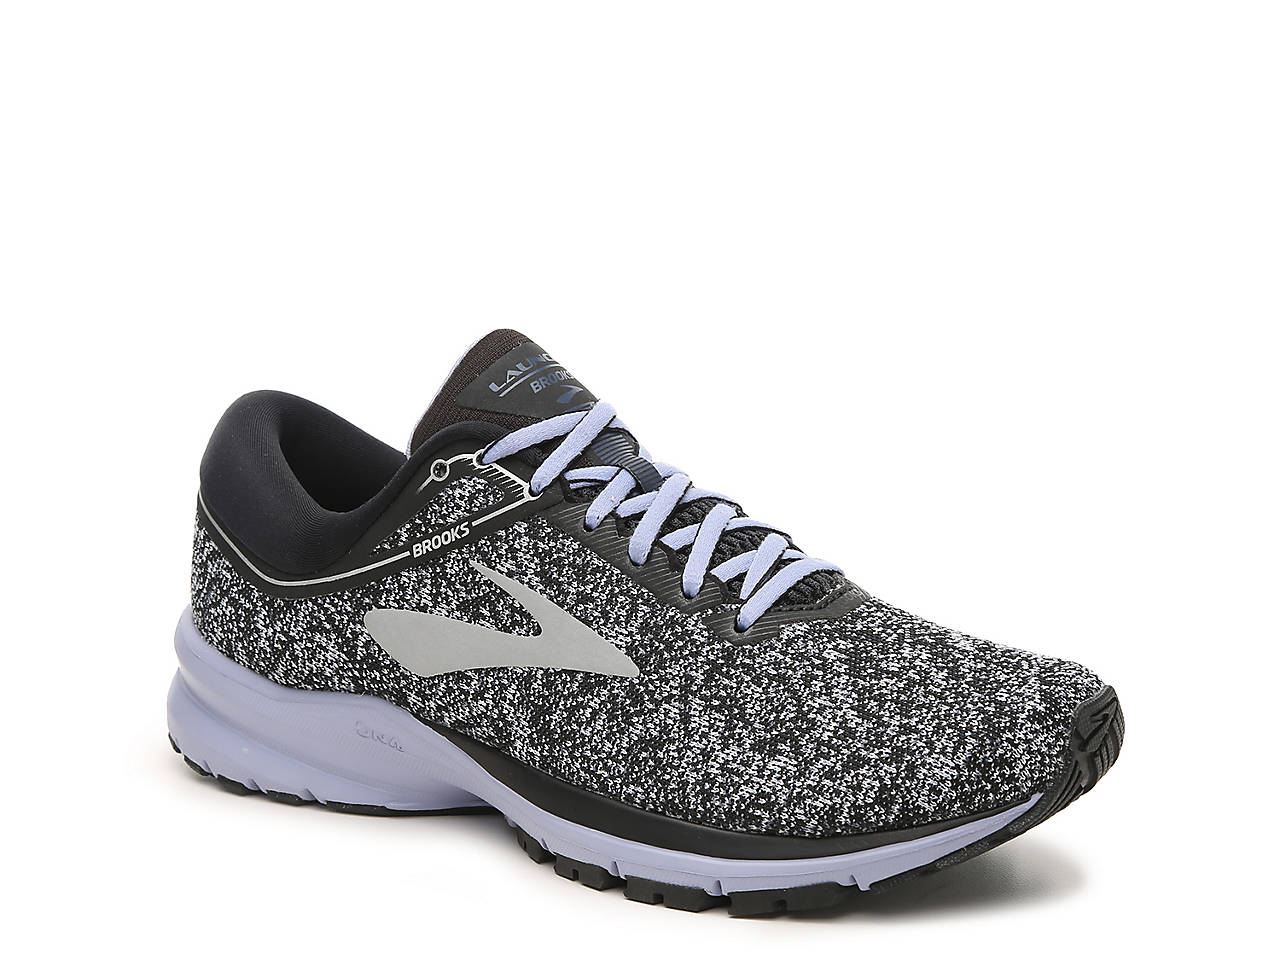 sports shoes 8f035 afe33 Launch 5 Performance Running Shoe - Women's